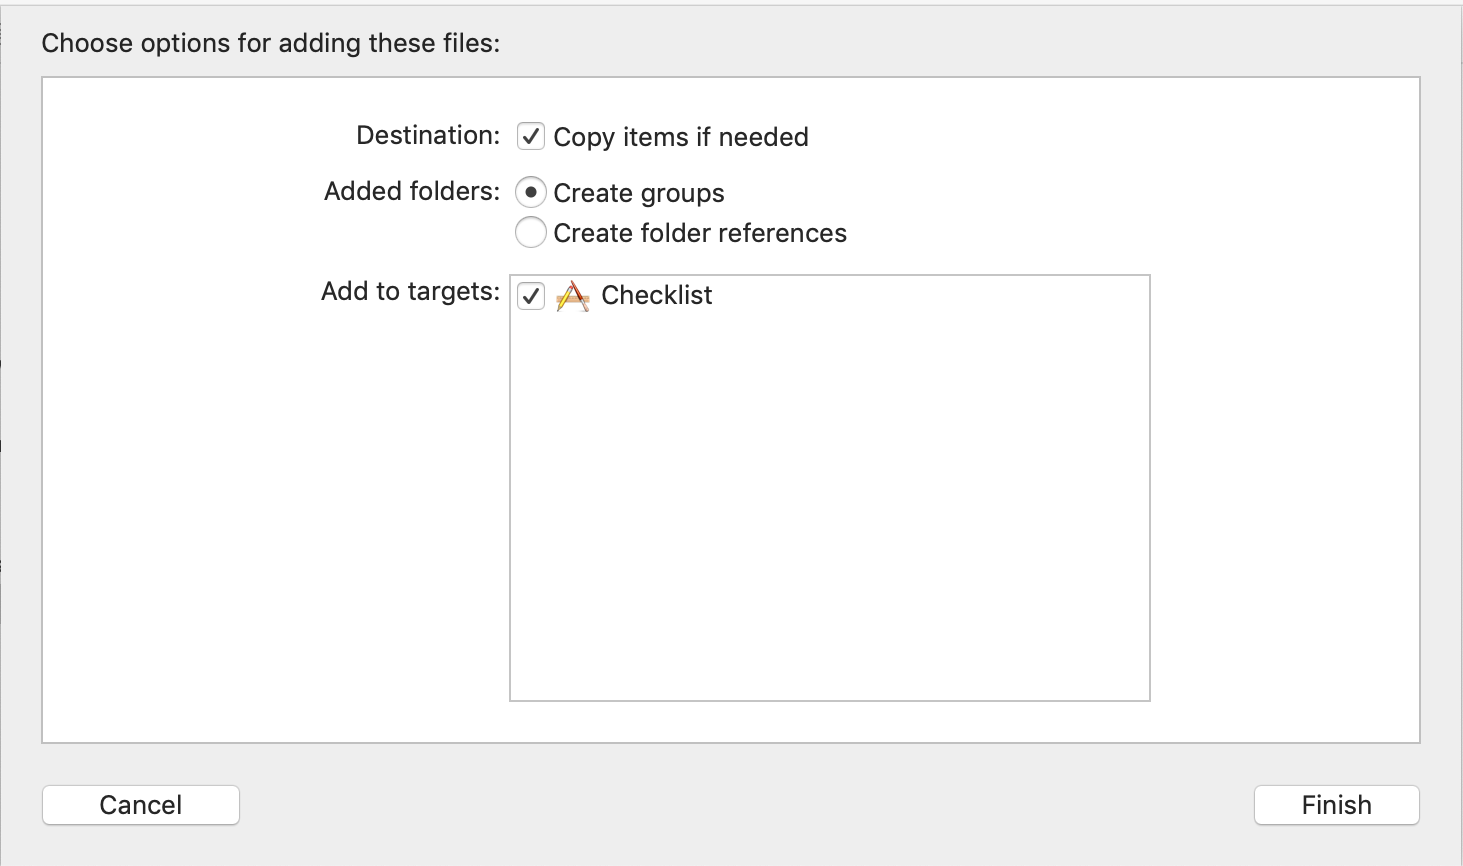 Choose options for adding these files